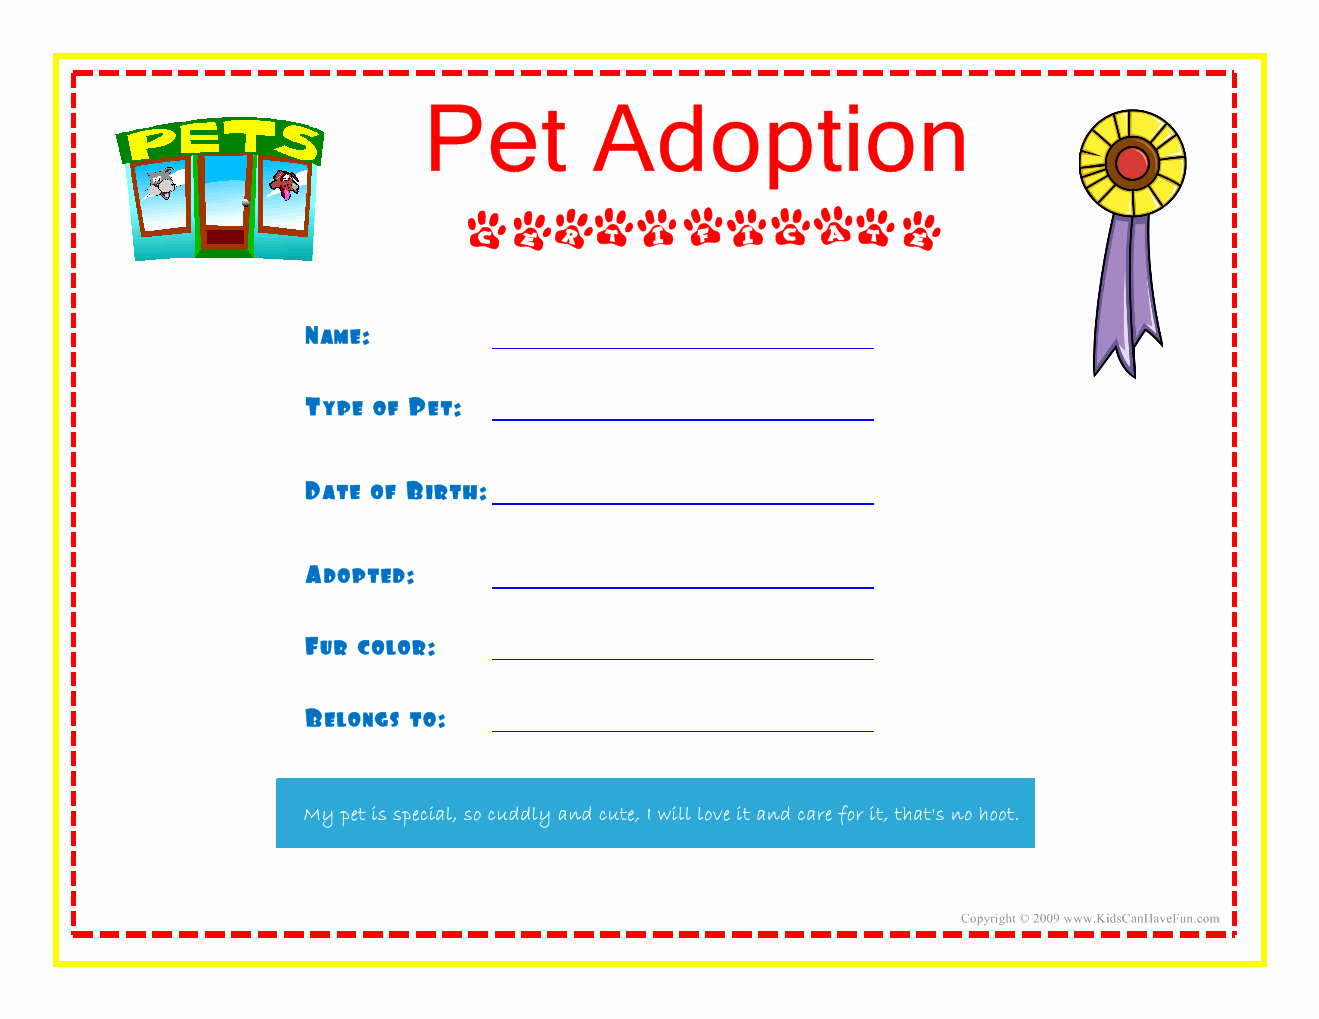 Stuffed Animal Birth Certificate Template Fresh Pet Adoption Certificate for the Kids to Fill Out About